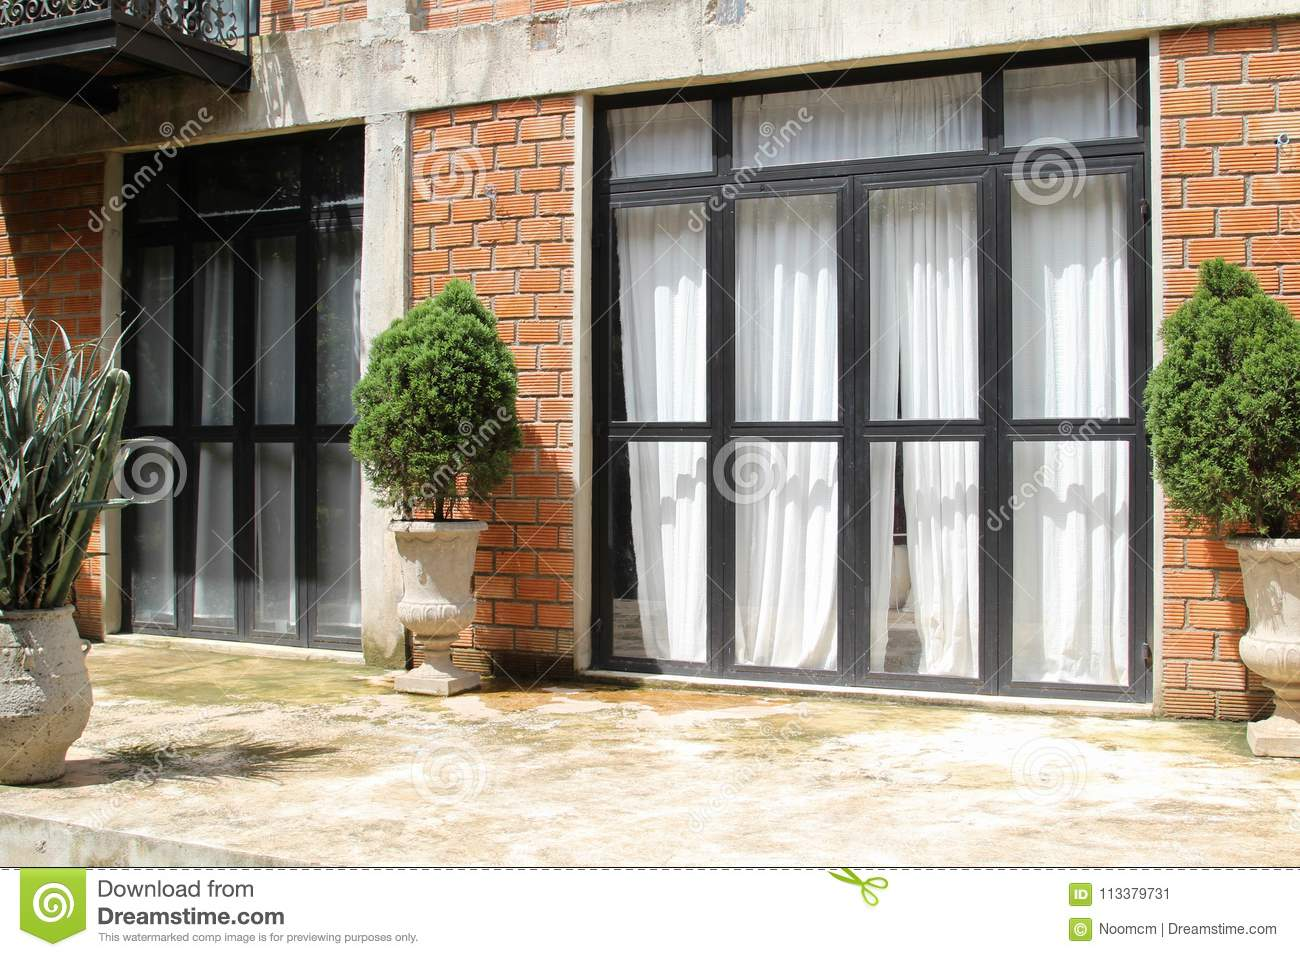 Door With Glass Frame On Brick Wall Stock Image - Image of